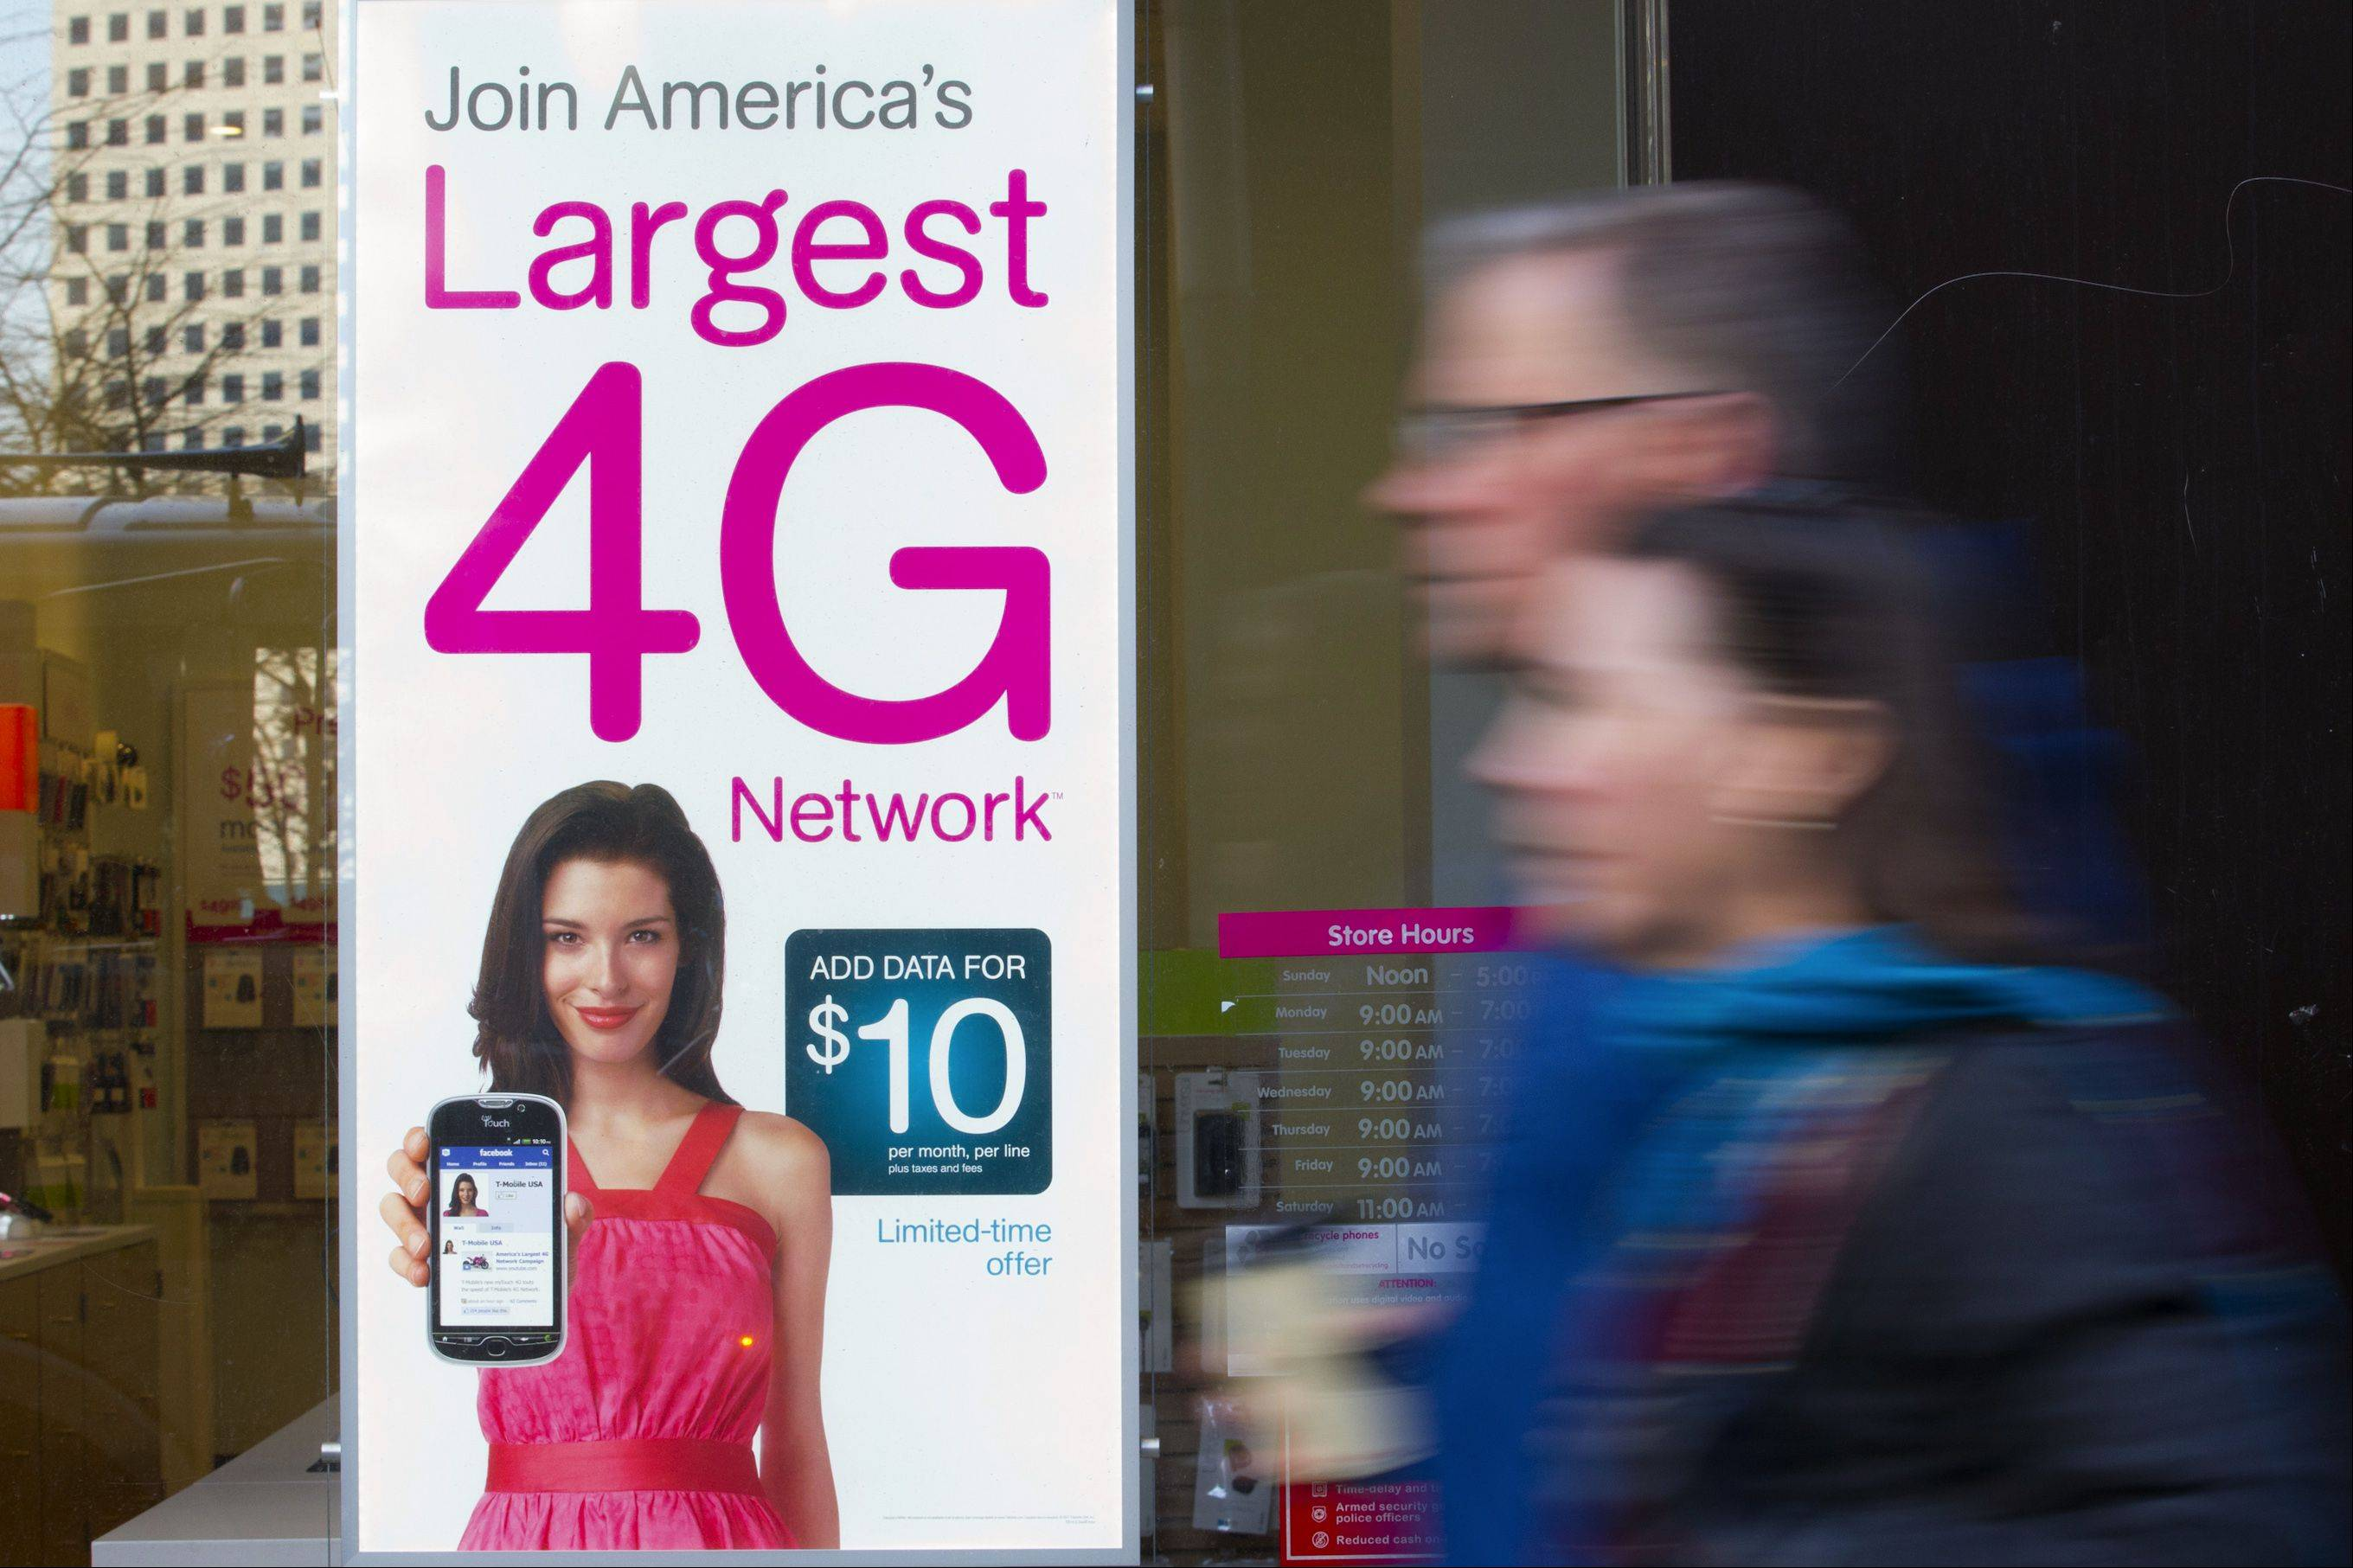 T-Mobile USA has named the former CEO of Global Crossing, John Legere, as its new CEO.